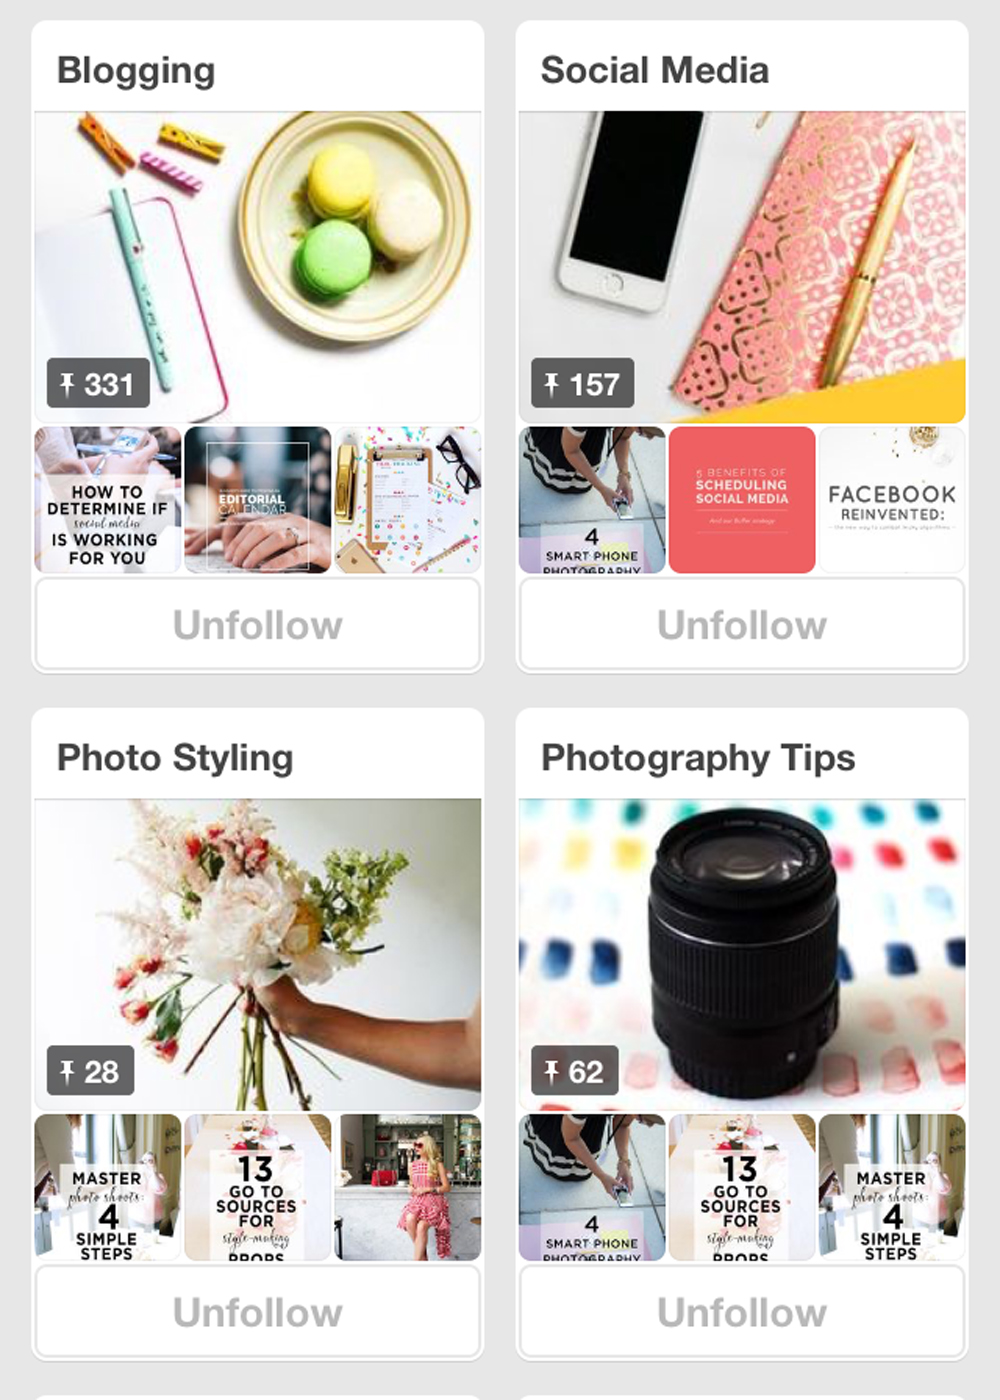 5 ways to brand your Pinterest boards